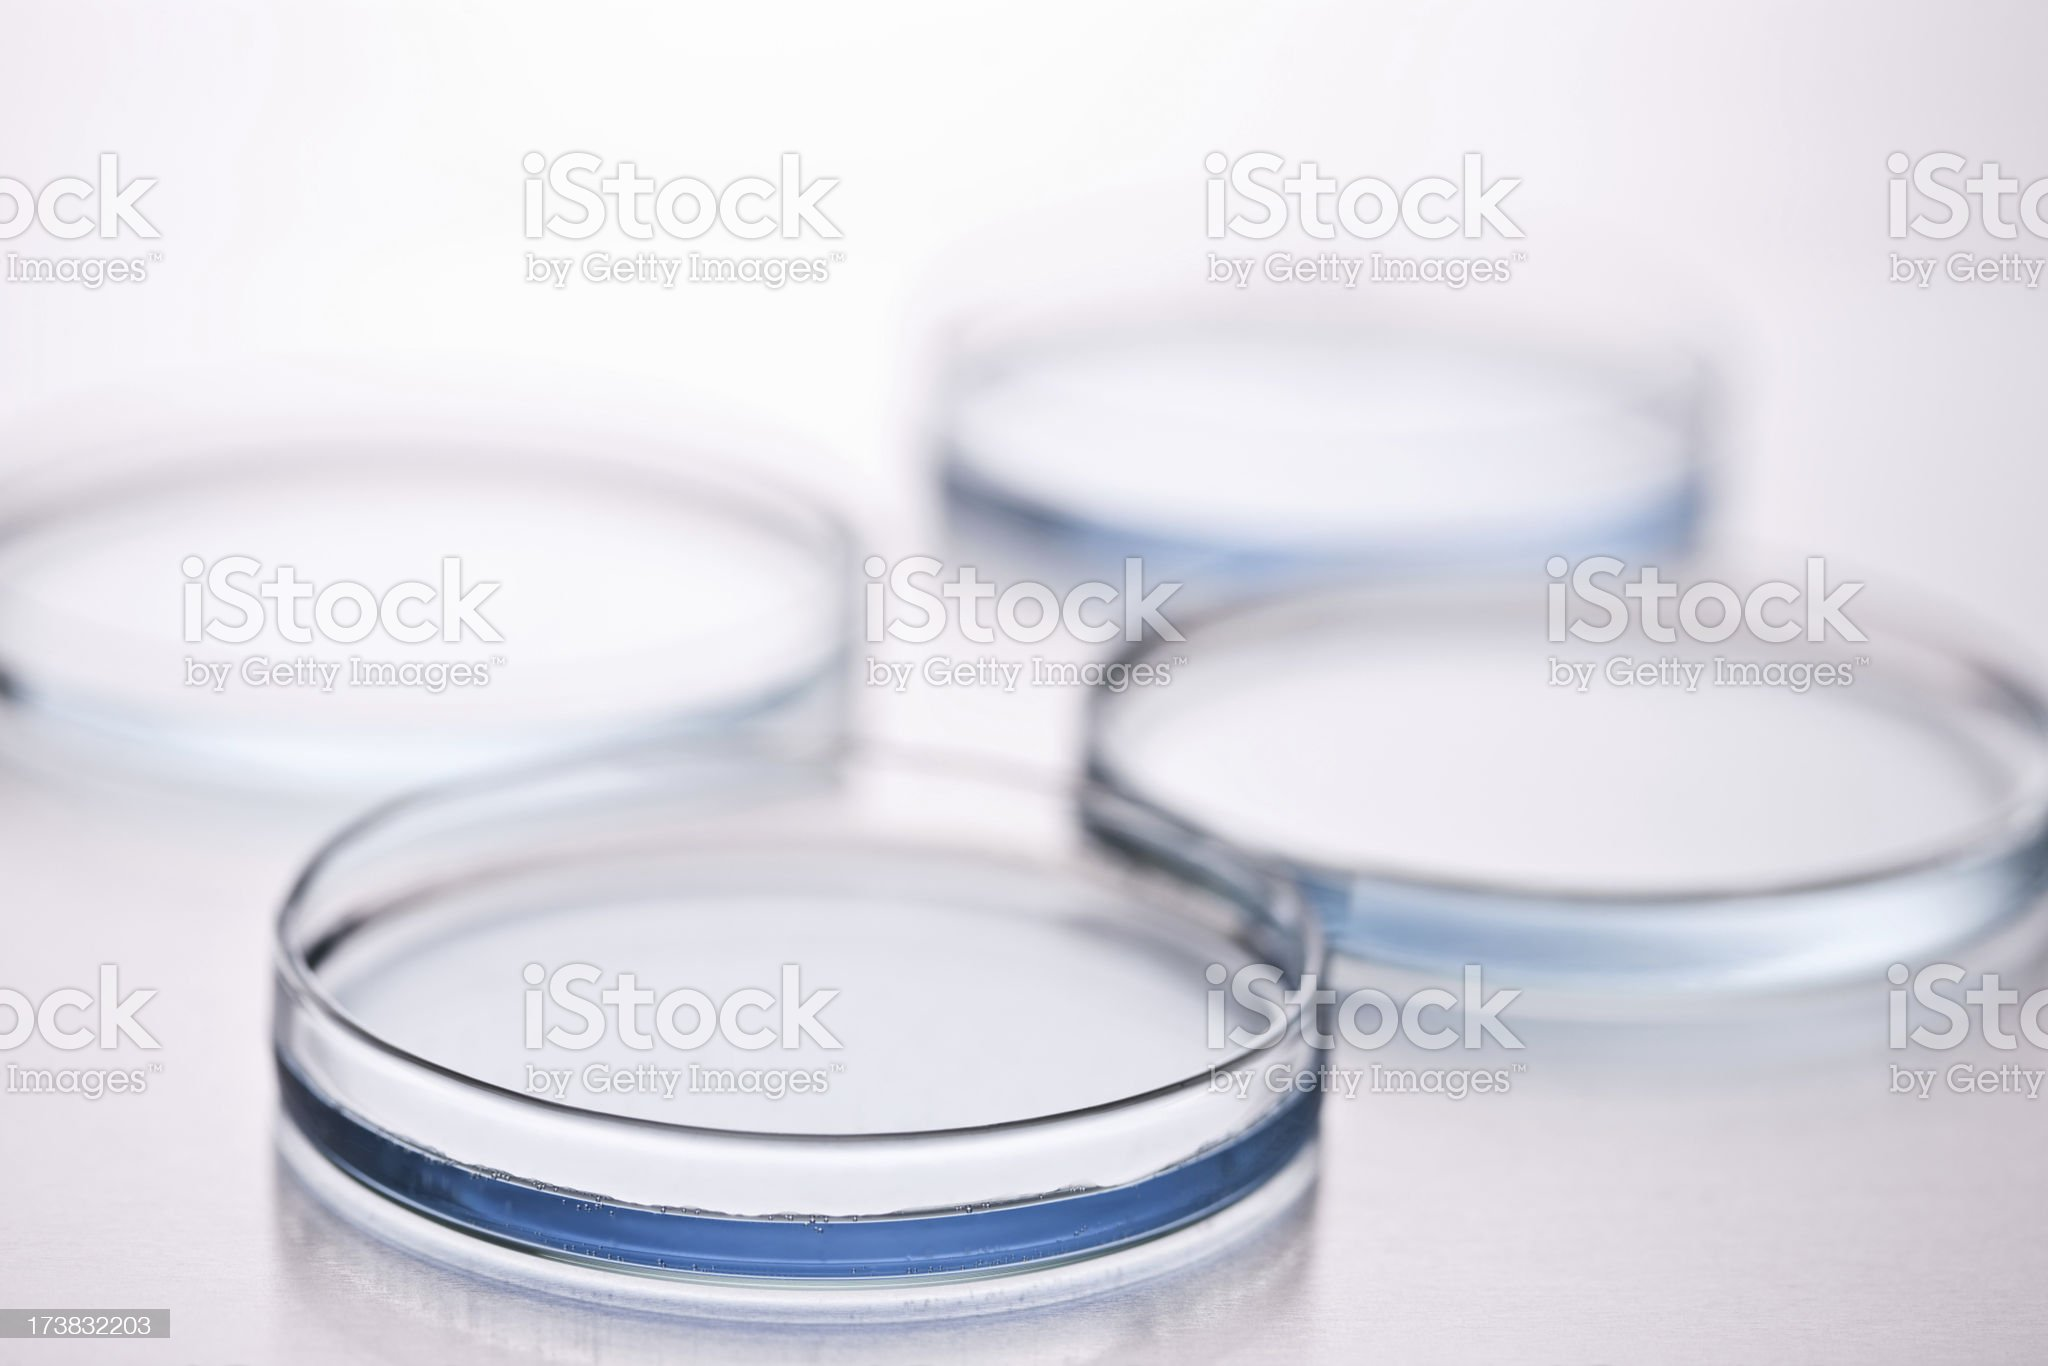 Group of petri dishes placed over isolated background royalty-free stock photo